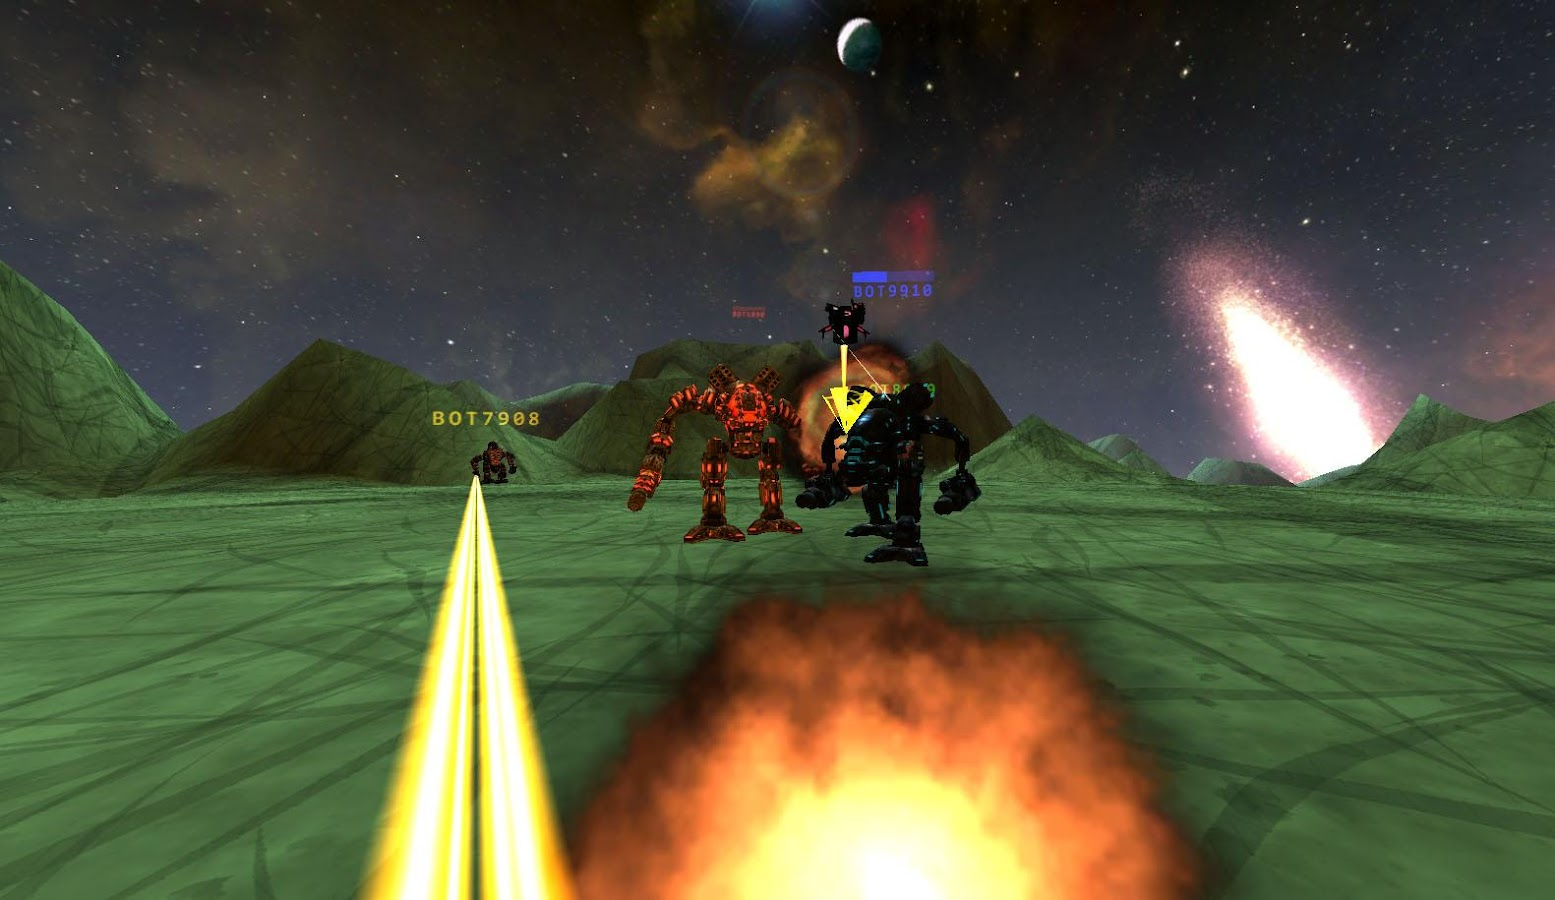 Galaxy VR Virtual Reality Game Screenshot 5